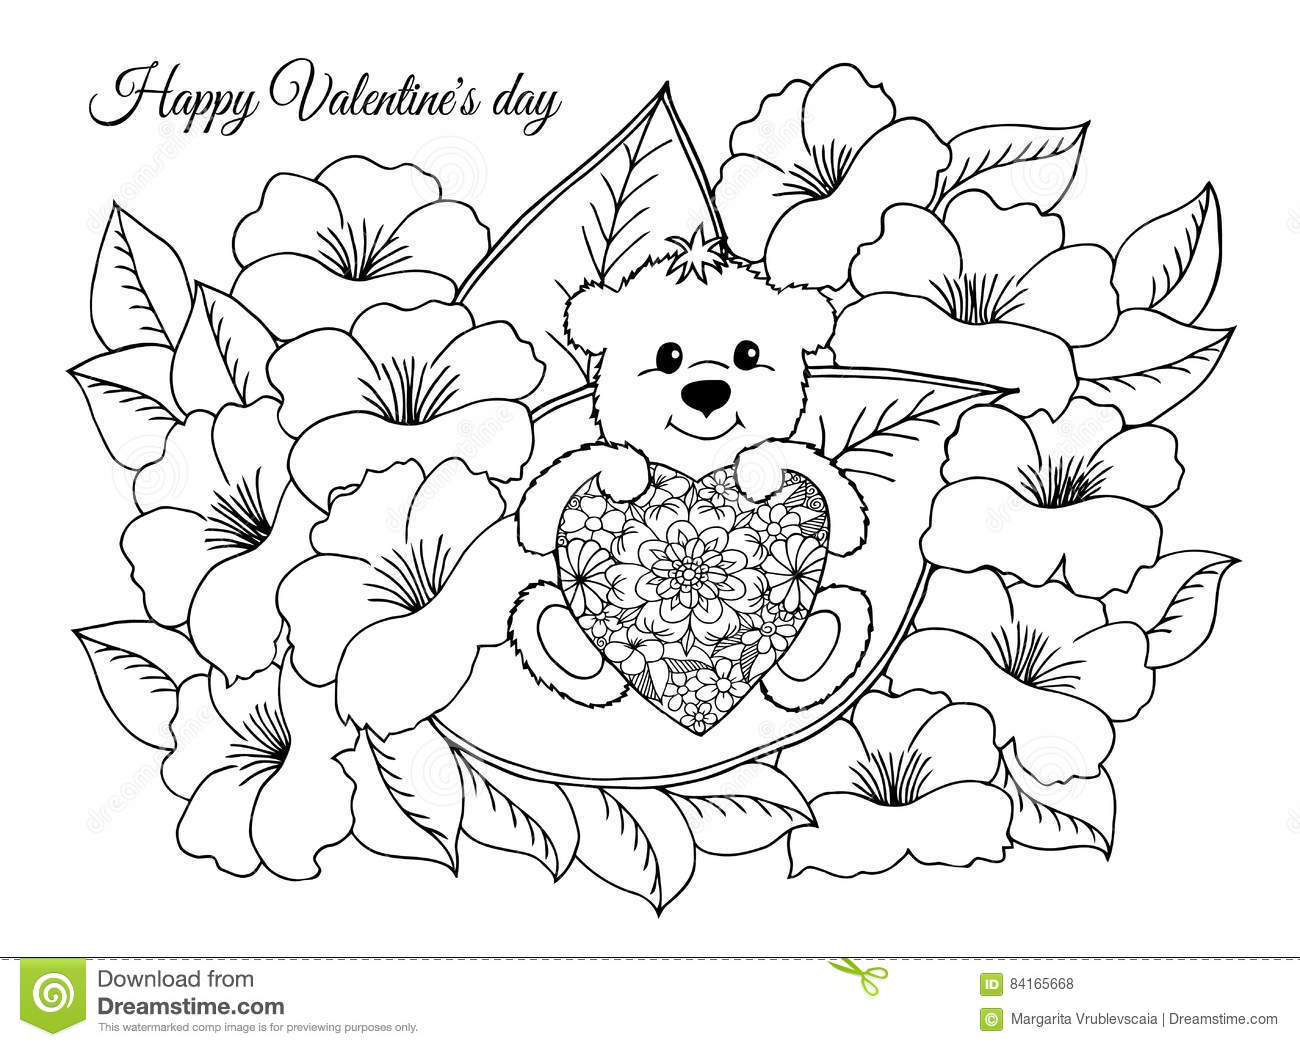 Vector Illustration,valentines, Enamored A Teddy Bear With